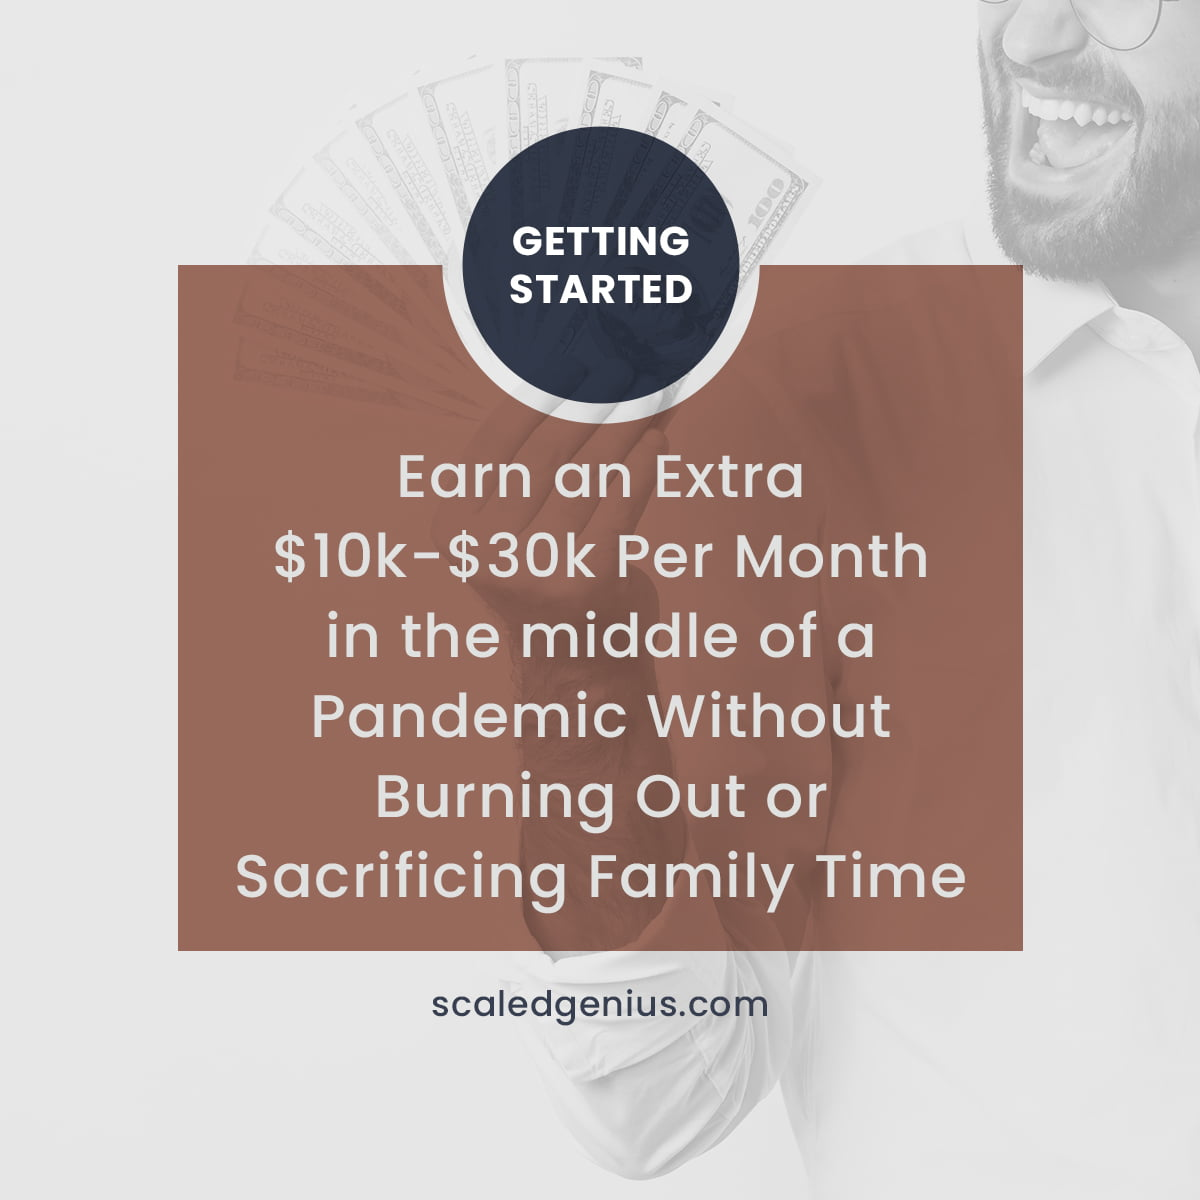 Earn an Extra $10k-$30k per Month in the Middle of a Pandemic Without Burning Out or Sacrificing Family Time